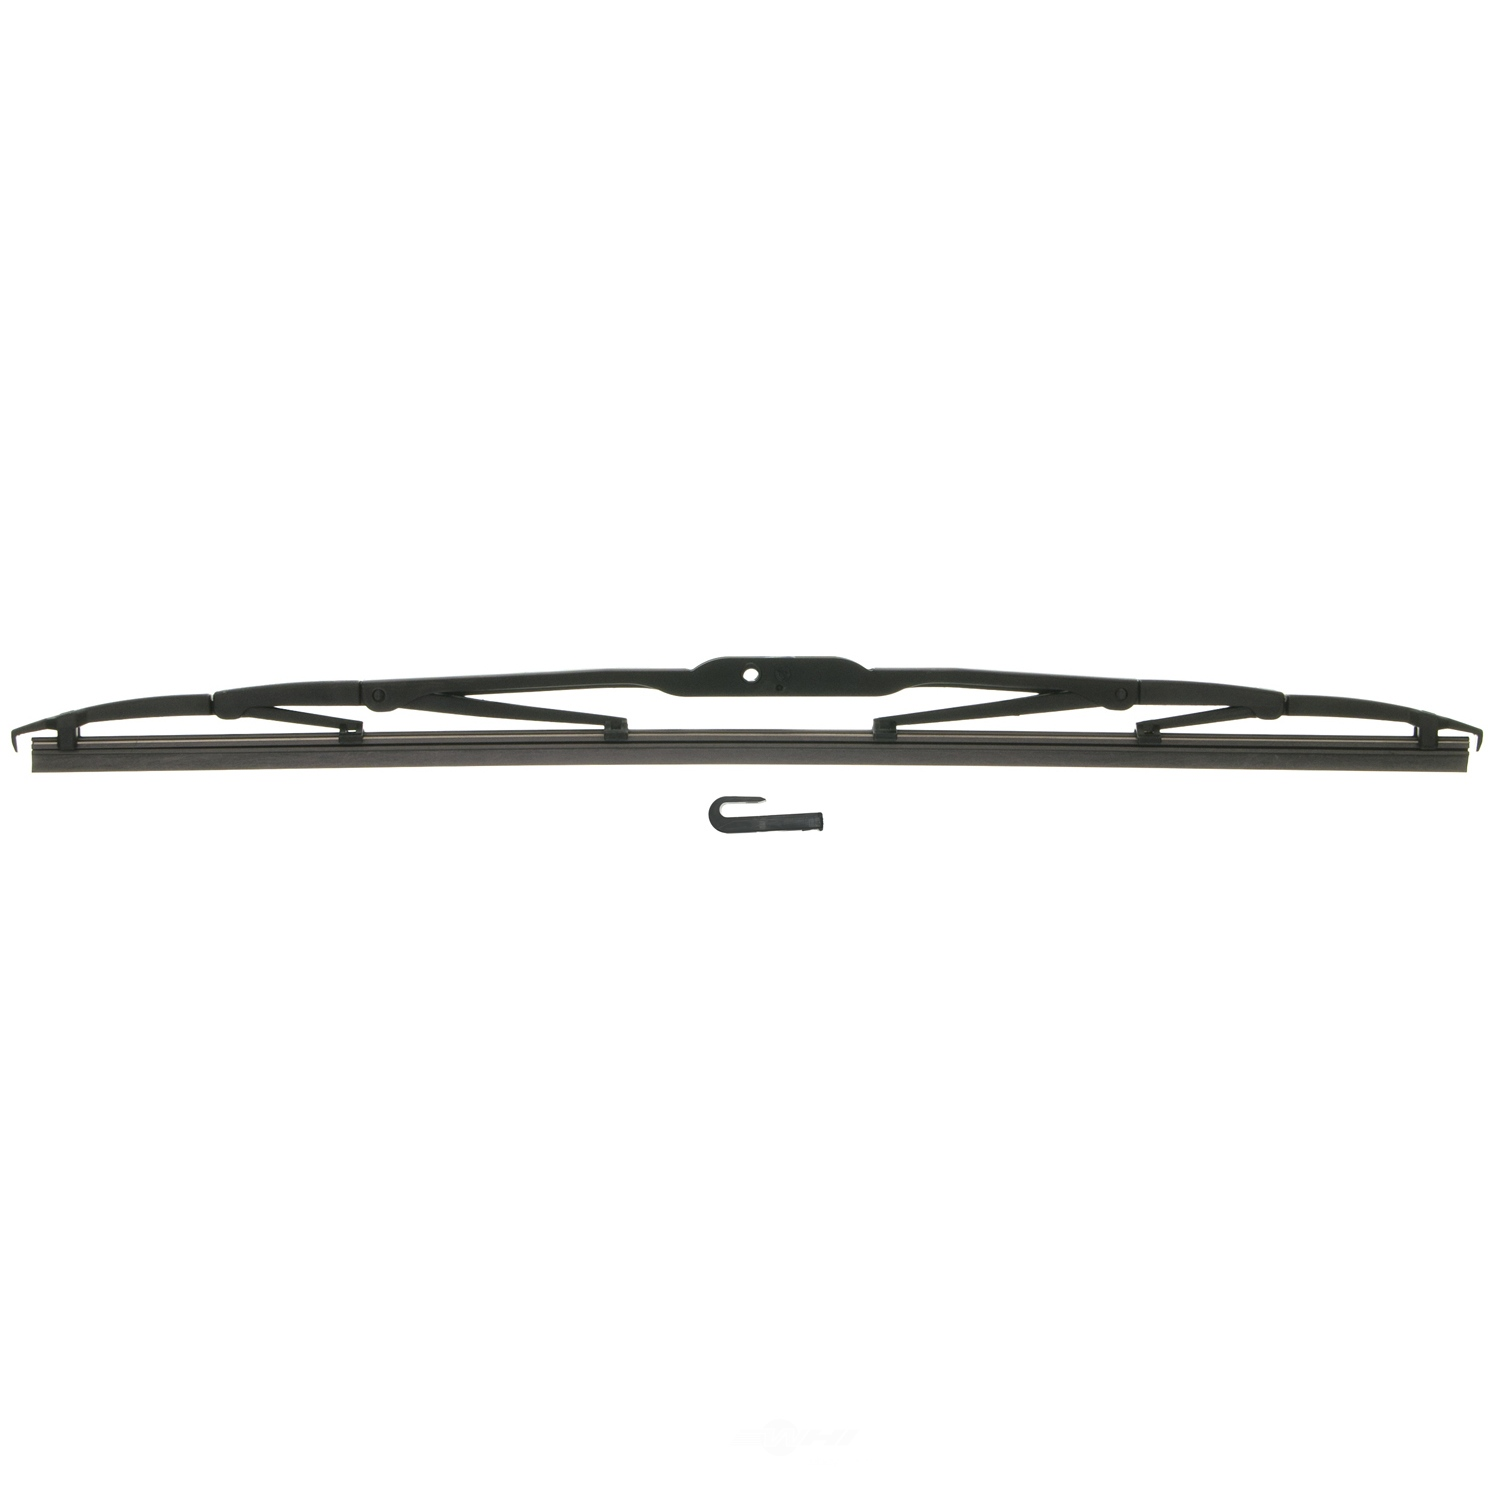 ANCO WIPER PRODUCTS - 31-series Wiper Blade (Right) - ANC 31-18